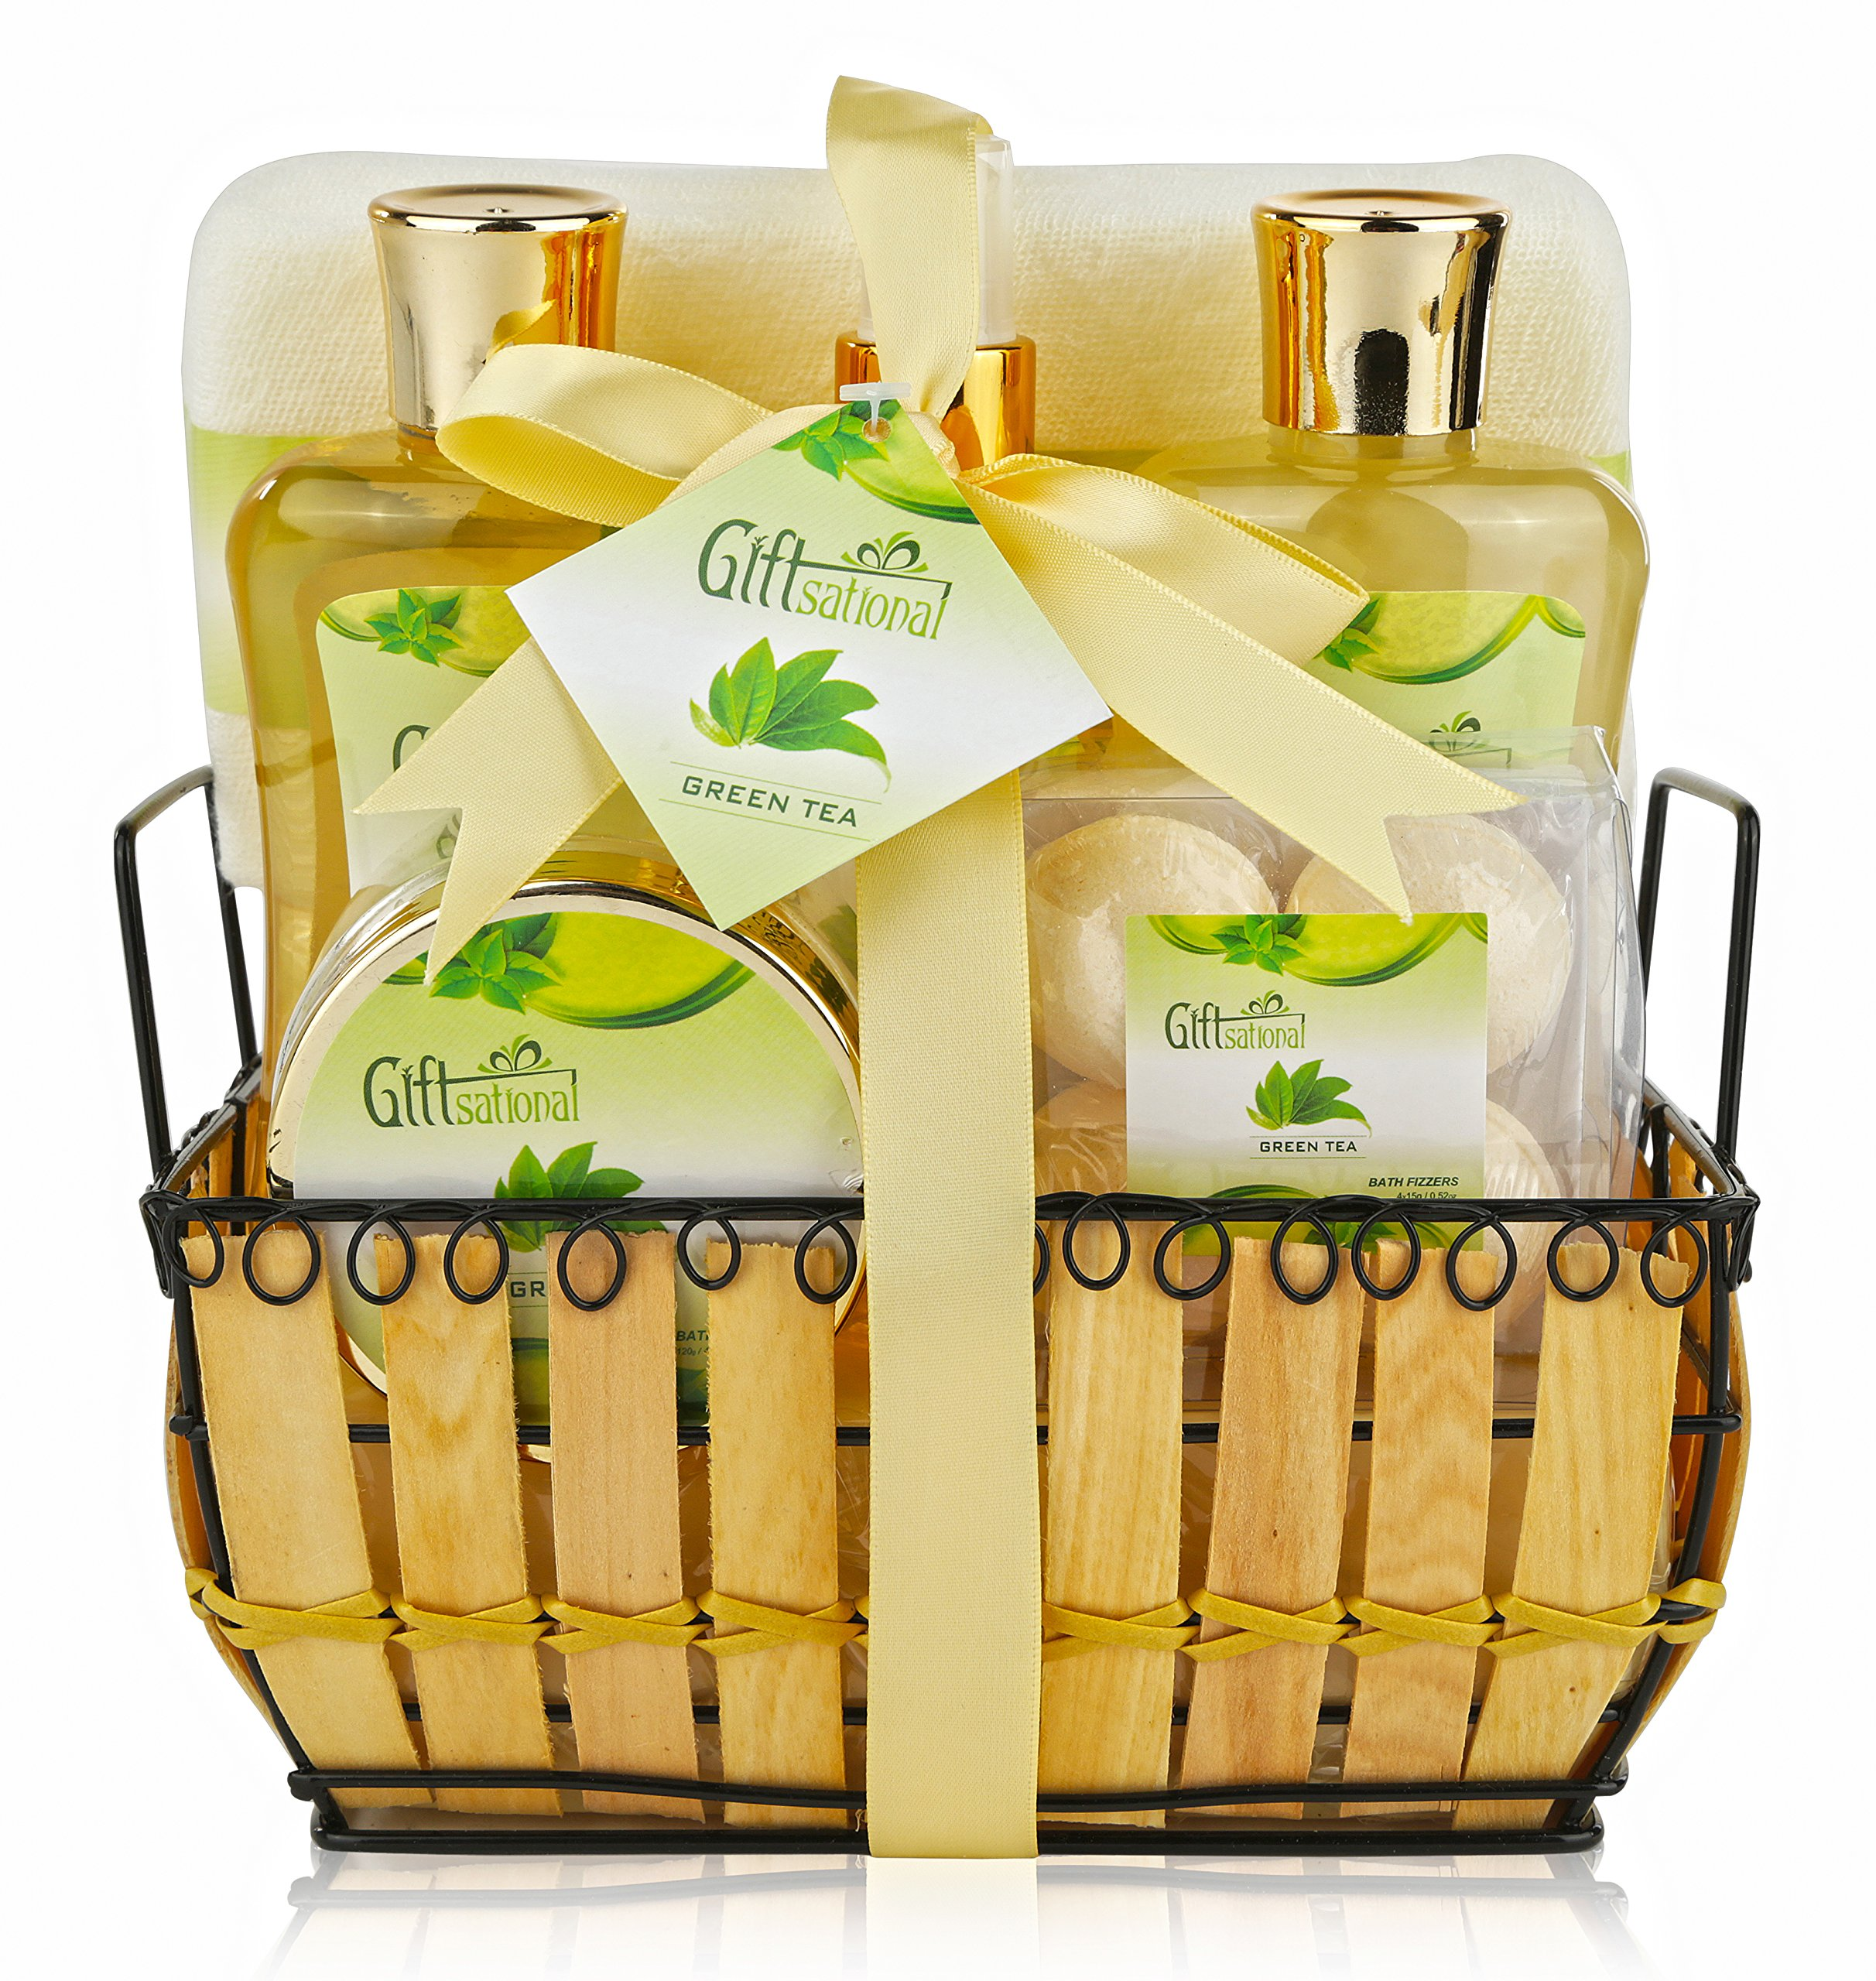 Cheap Bath Salts Gift Find Deals On Line At Alibabacom Bubble Foam Aromatherapy Pure Peppermint Essential Oil Pink Lotus Get Quotations Spa Basket With Rejuvenating Green Tea Fragrance Great Mothers Day Wedding Birthday